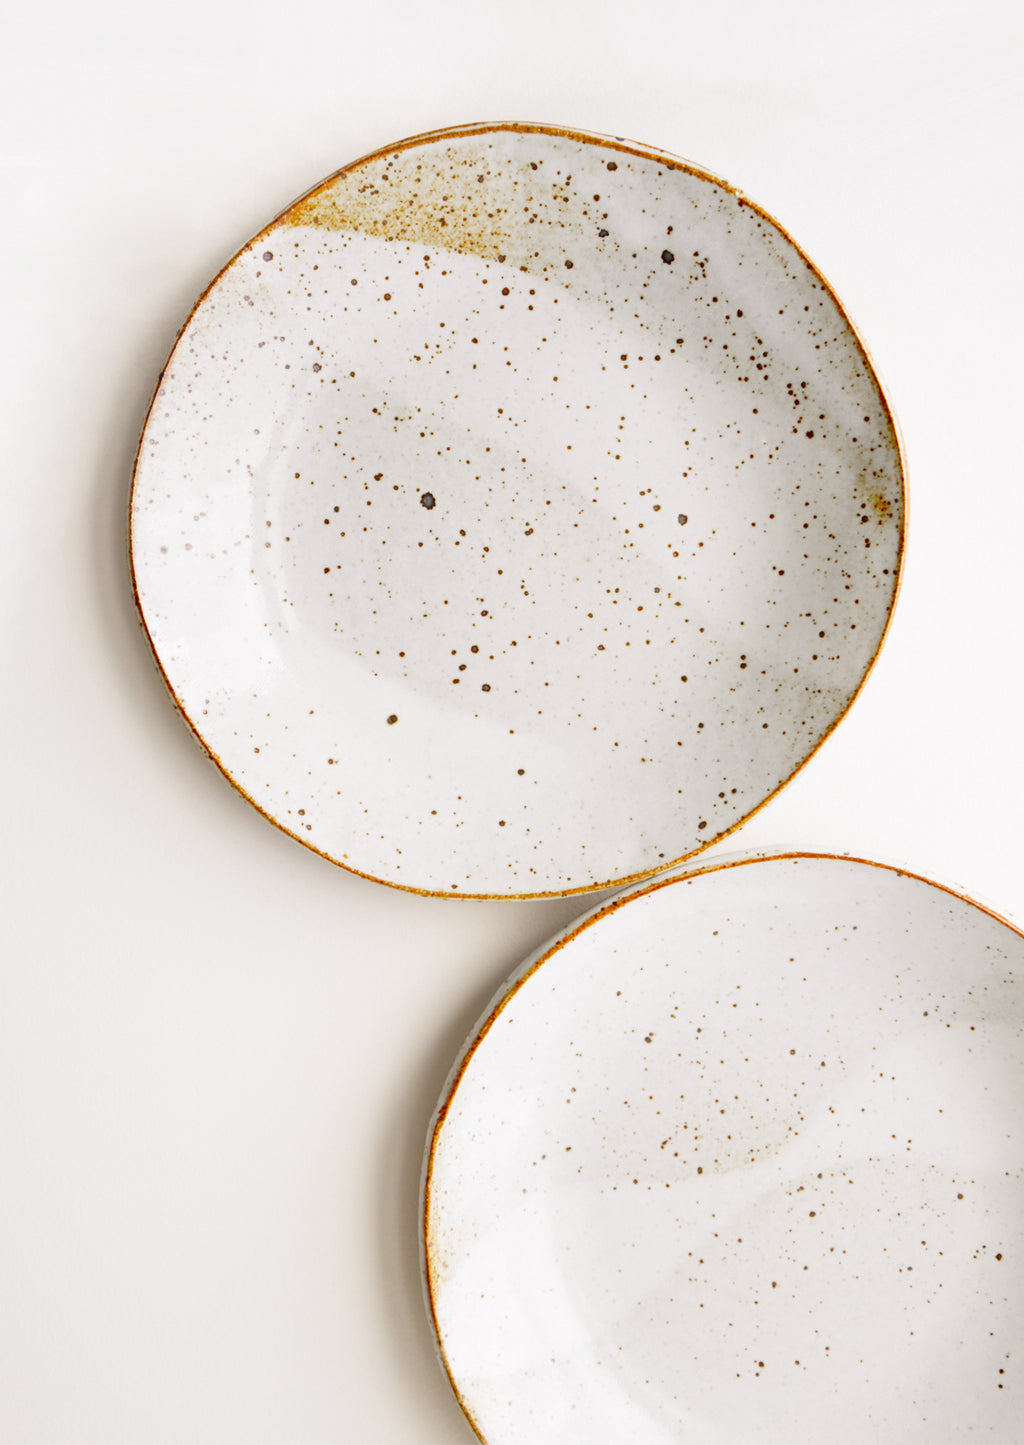 Glossy White: Rustic Ceramic Plate in Glossy White - LEIF